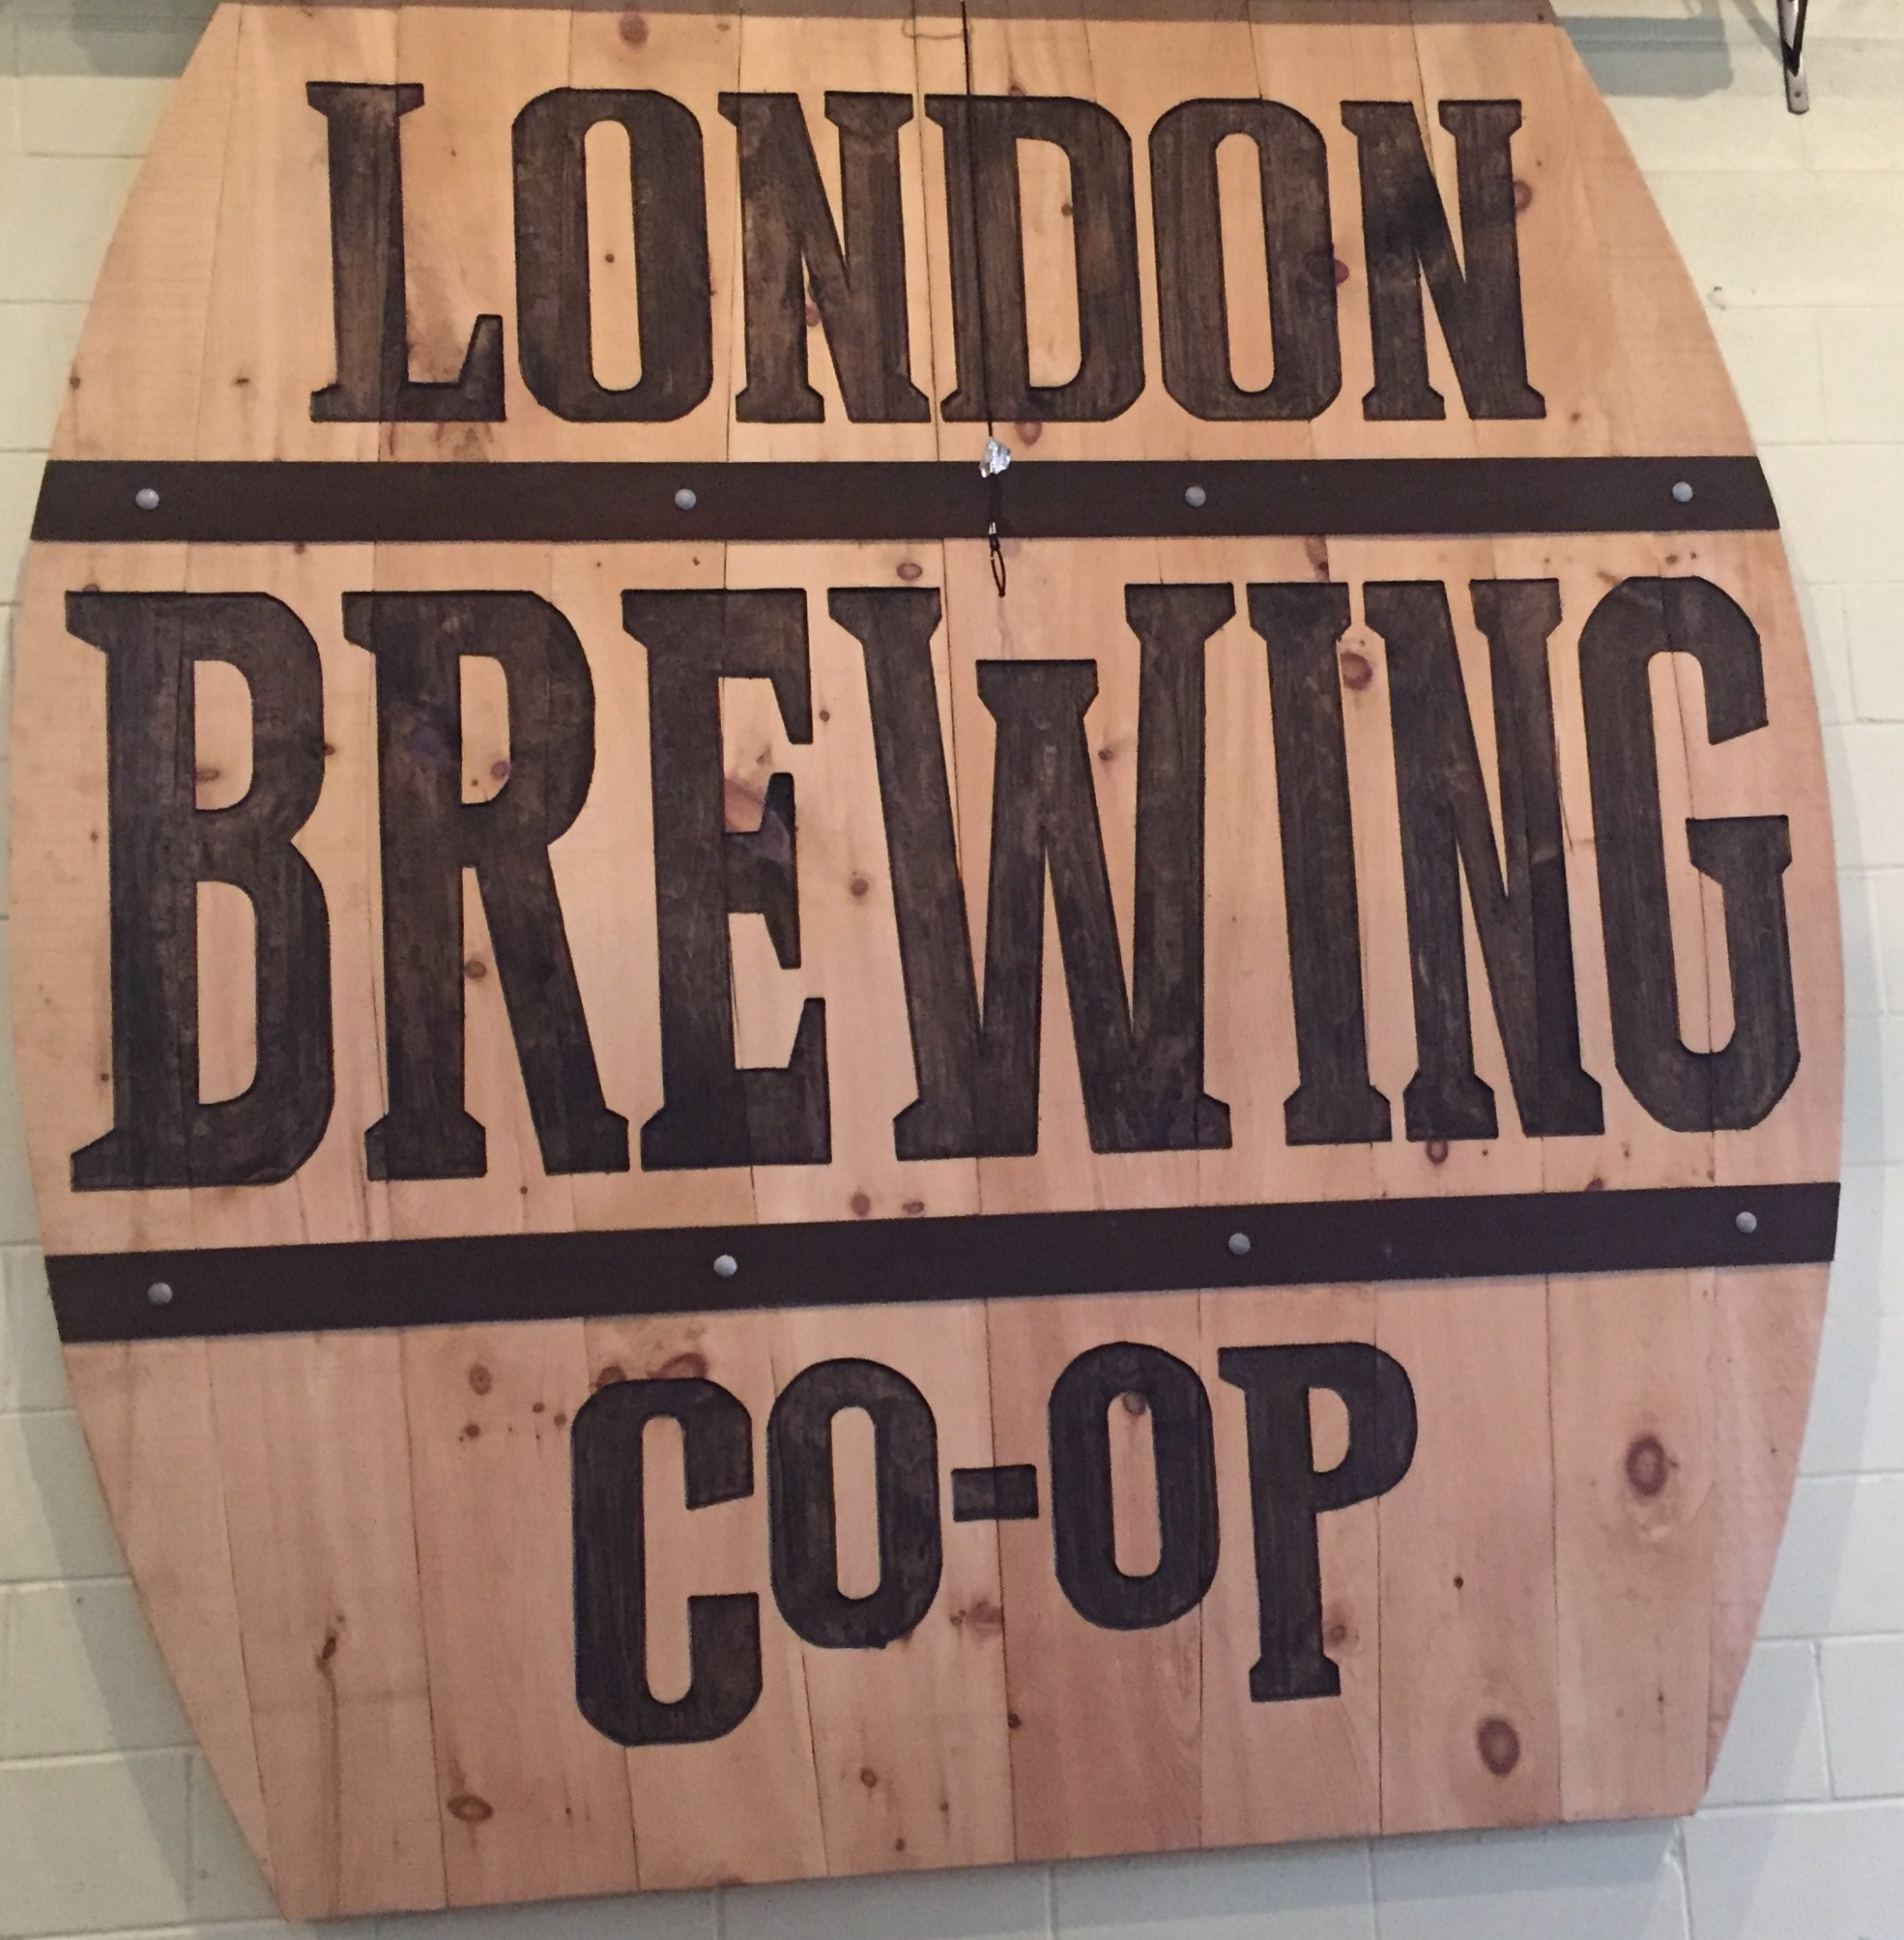 London Brewing Co-operative first of its kind.